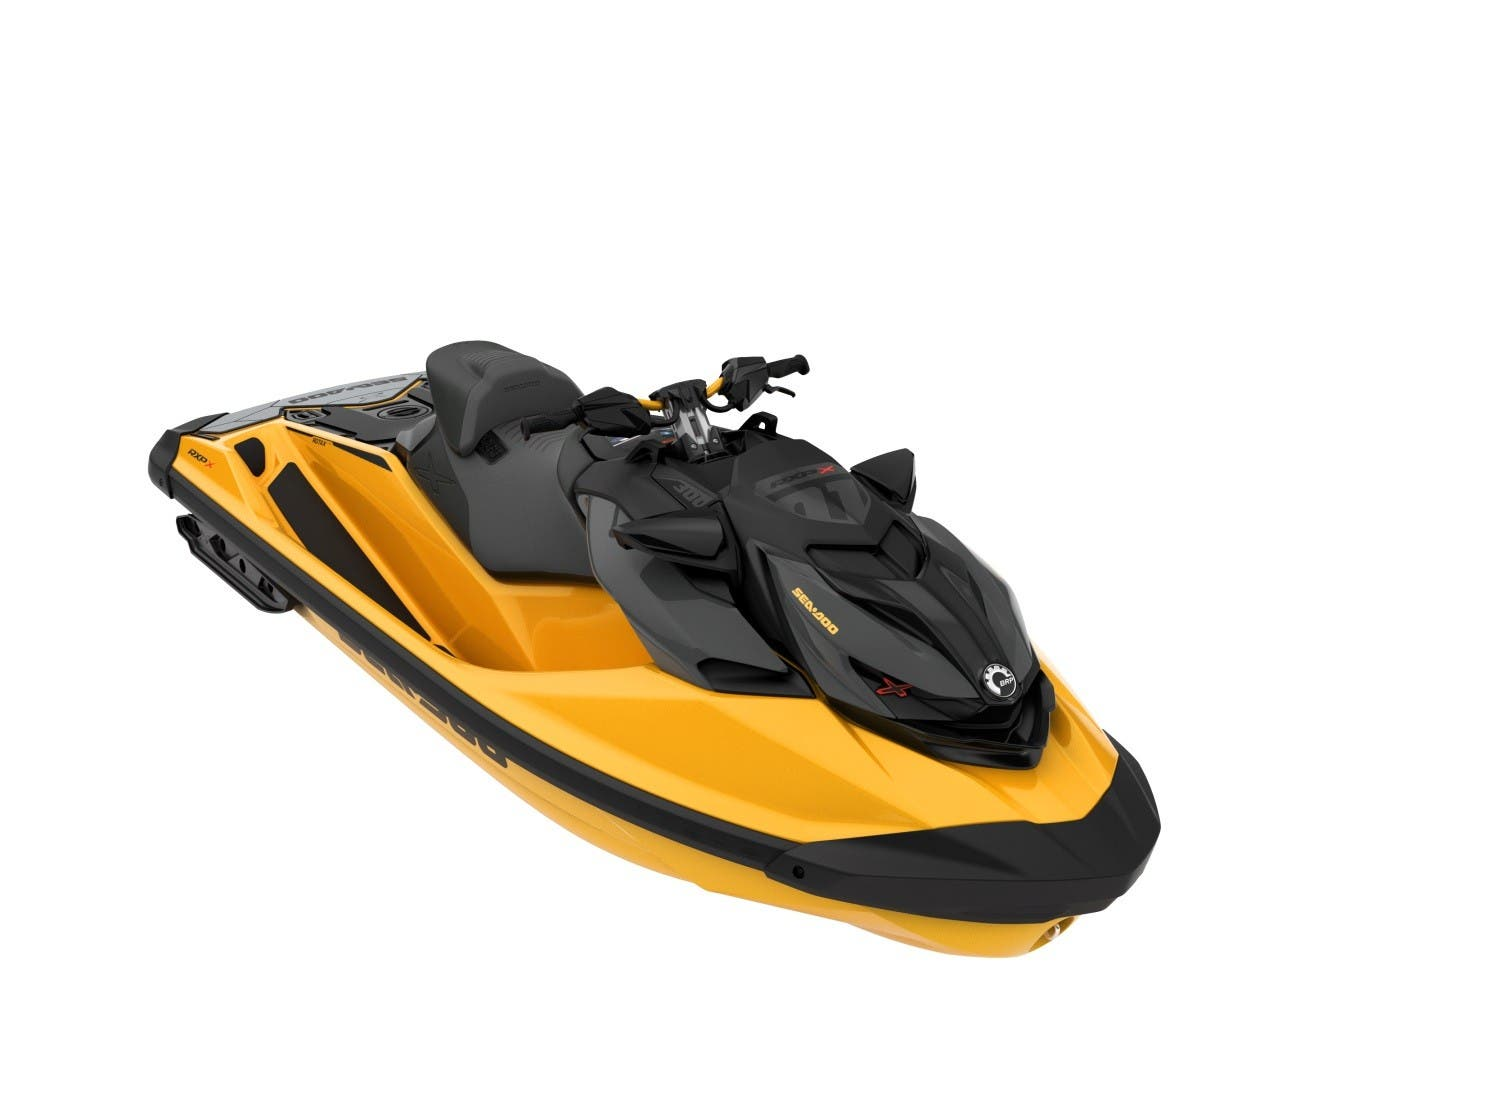 2021 Sea Doo PWC boat for sale, model of the boat is RXP X 300 & Image # 4 of 5